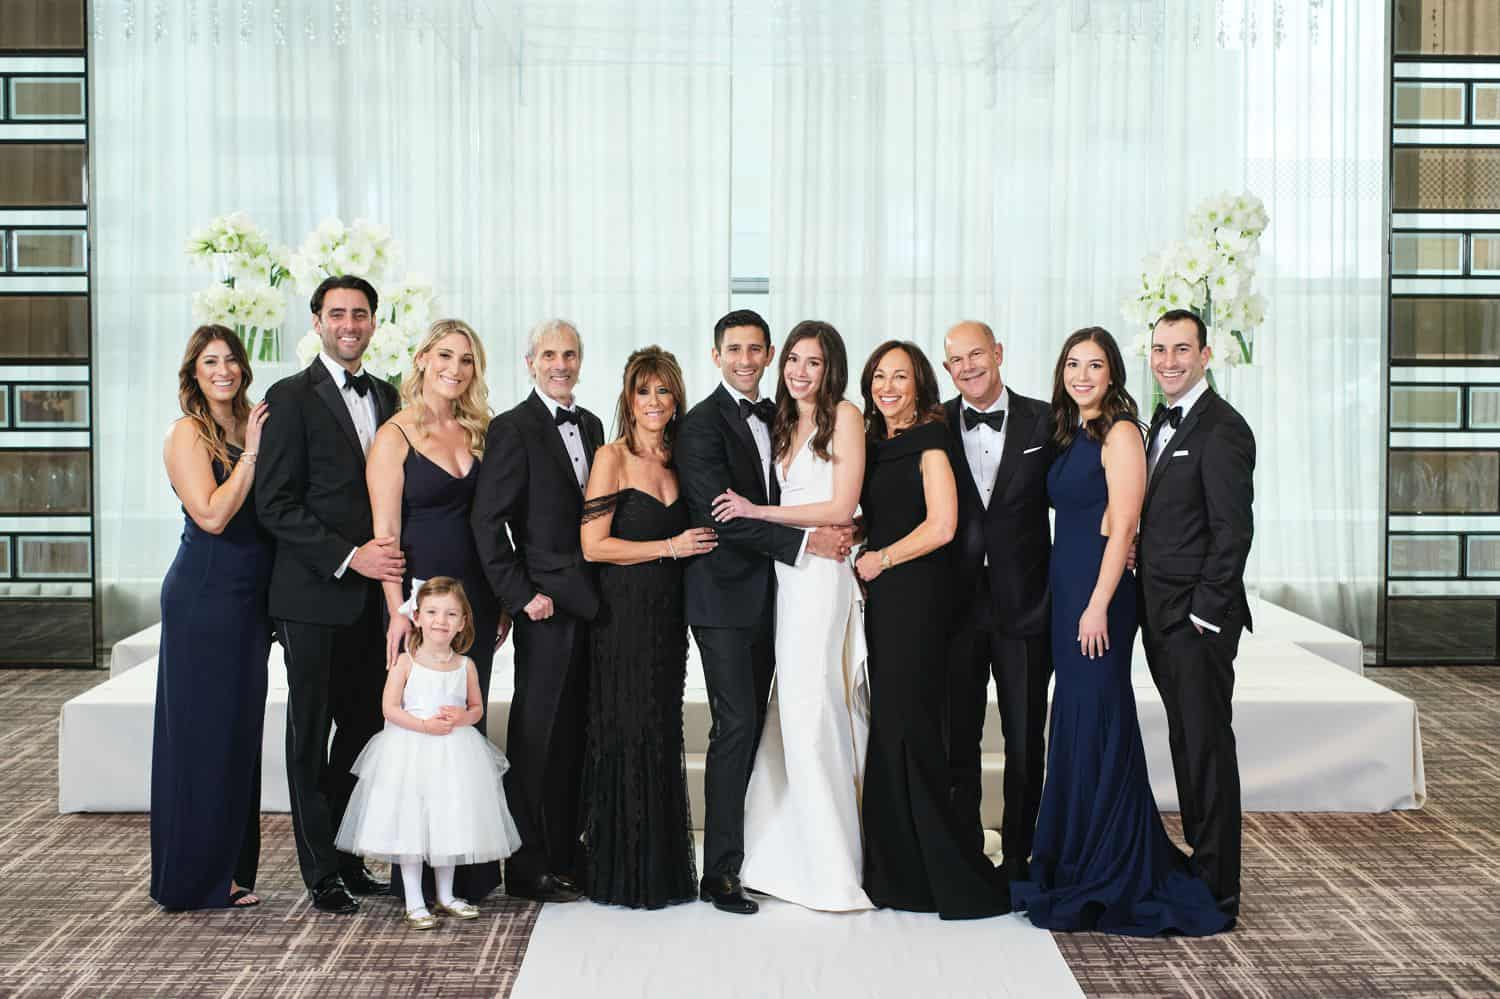 A large family poses in front of a white drape for a wedding day portrait